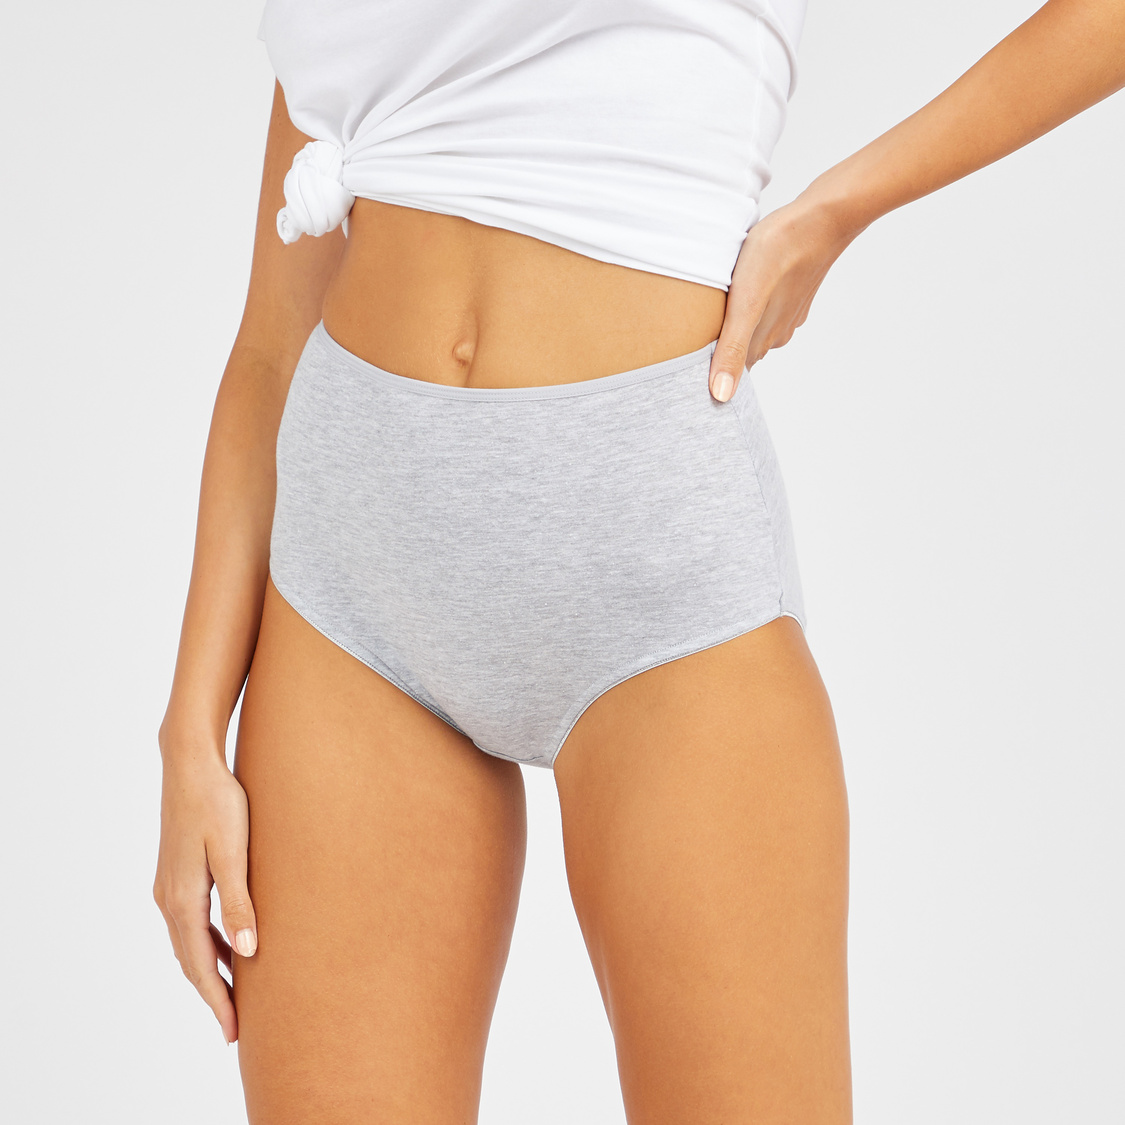 Set of 5 - Solid Full Briefs with Elasticised Waistband